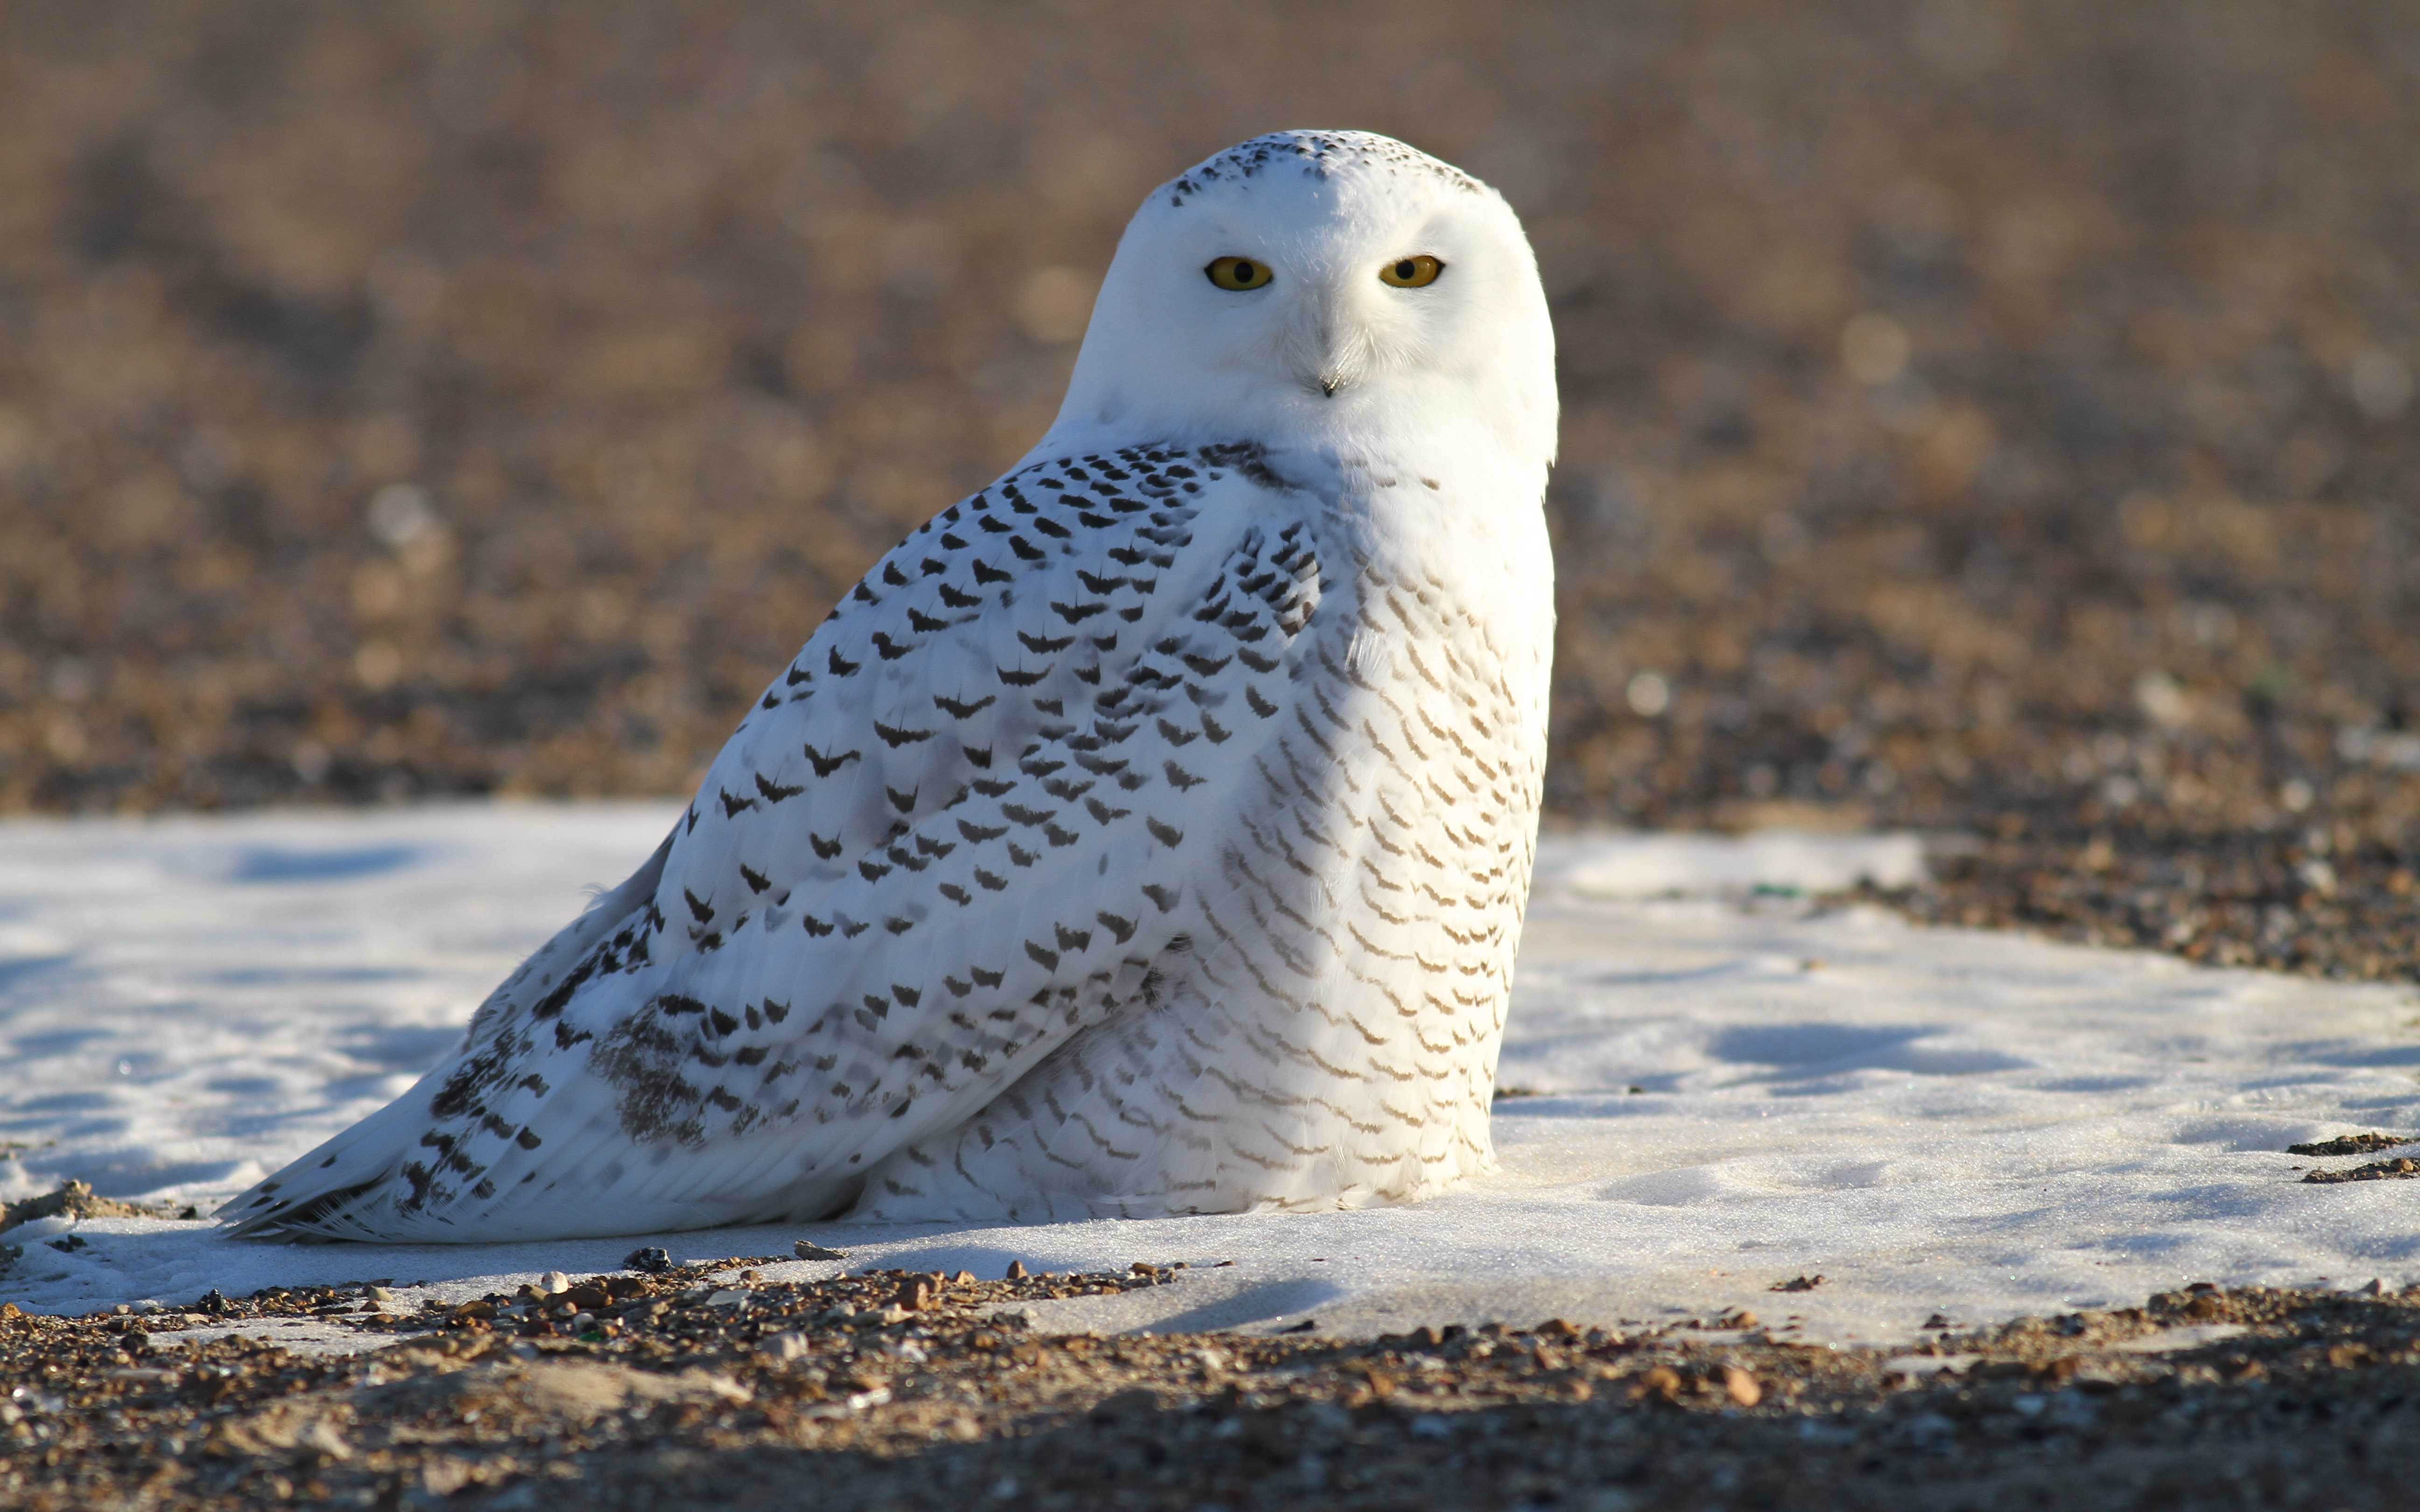 The snowy owl locks eyes with the camera. Owls are Hoeckner's favorite bird of prey to photograph.